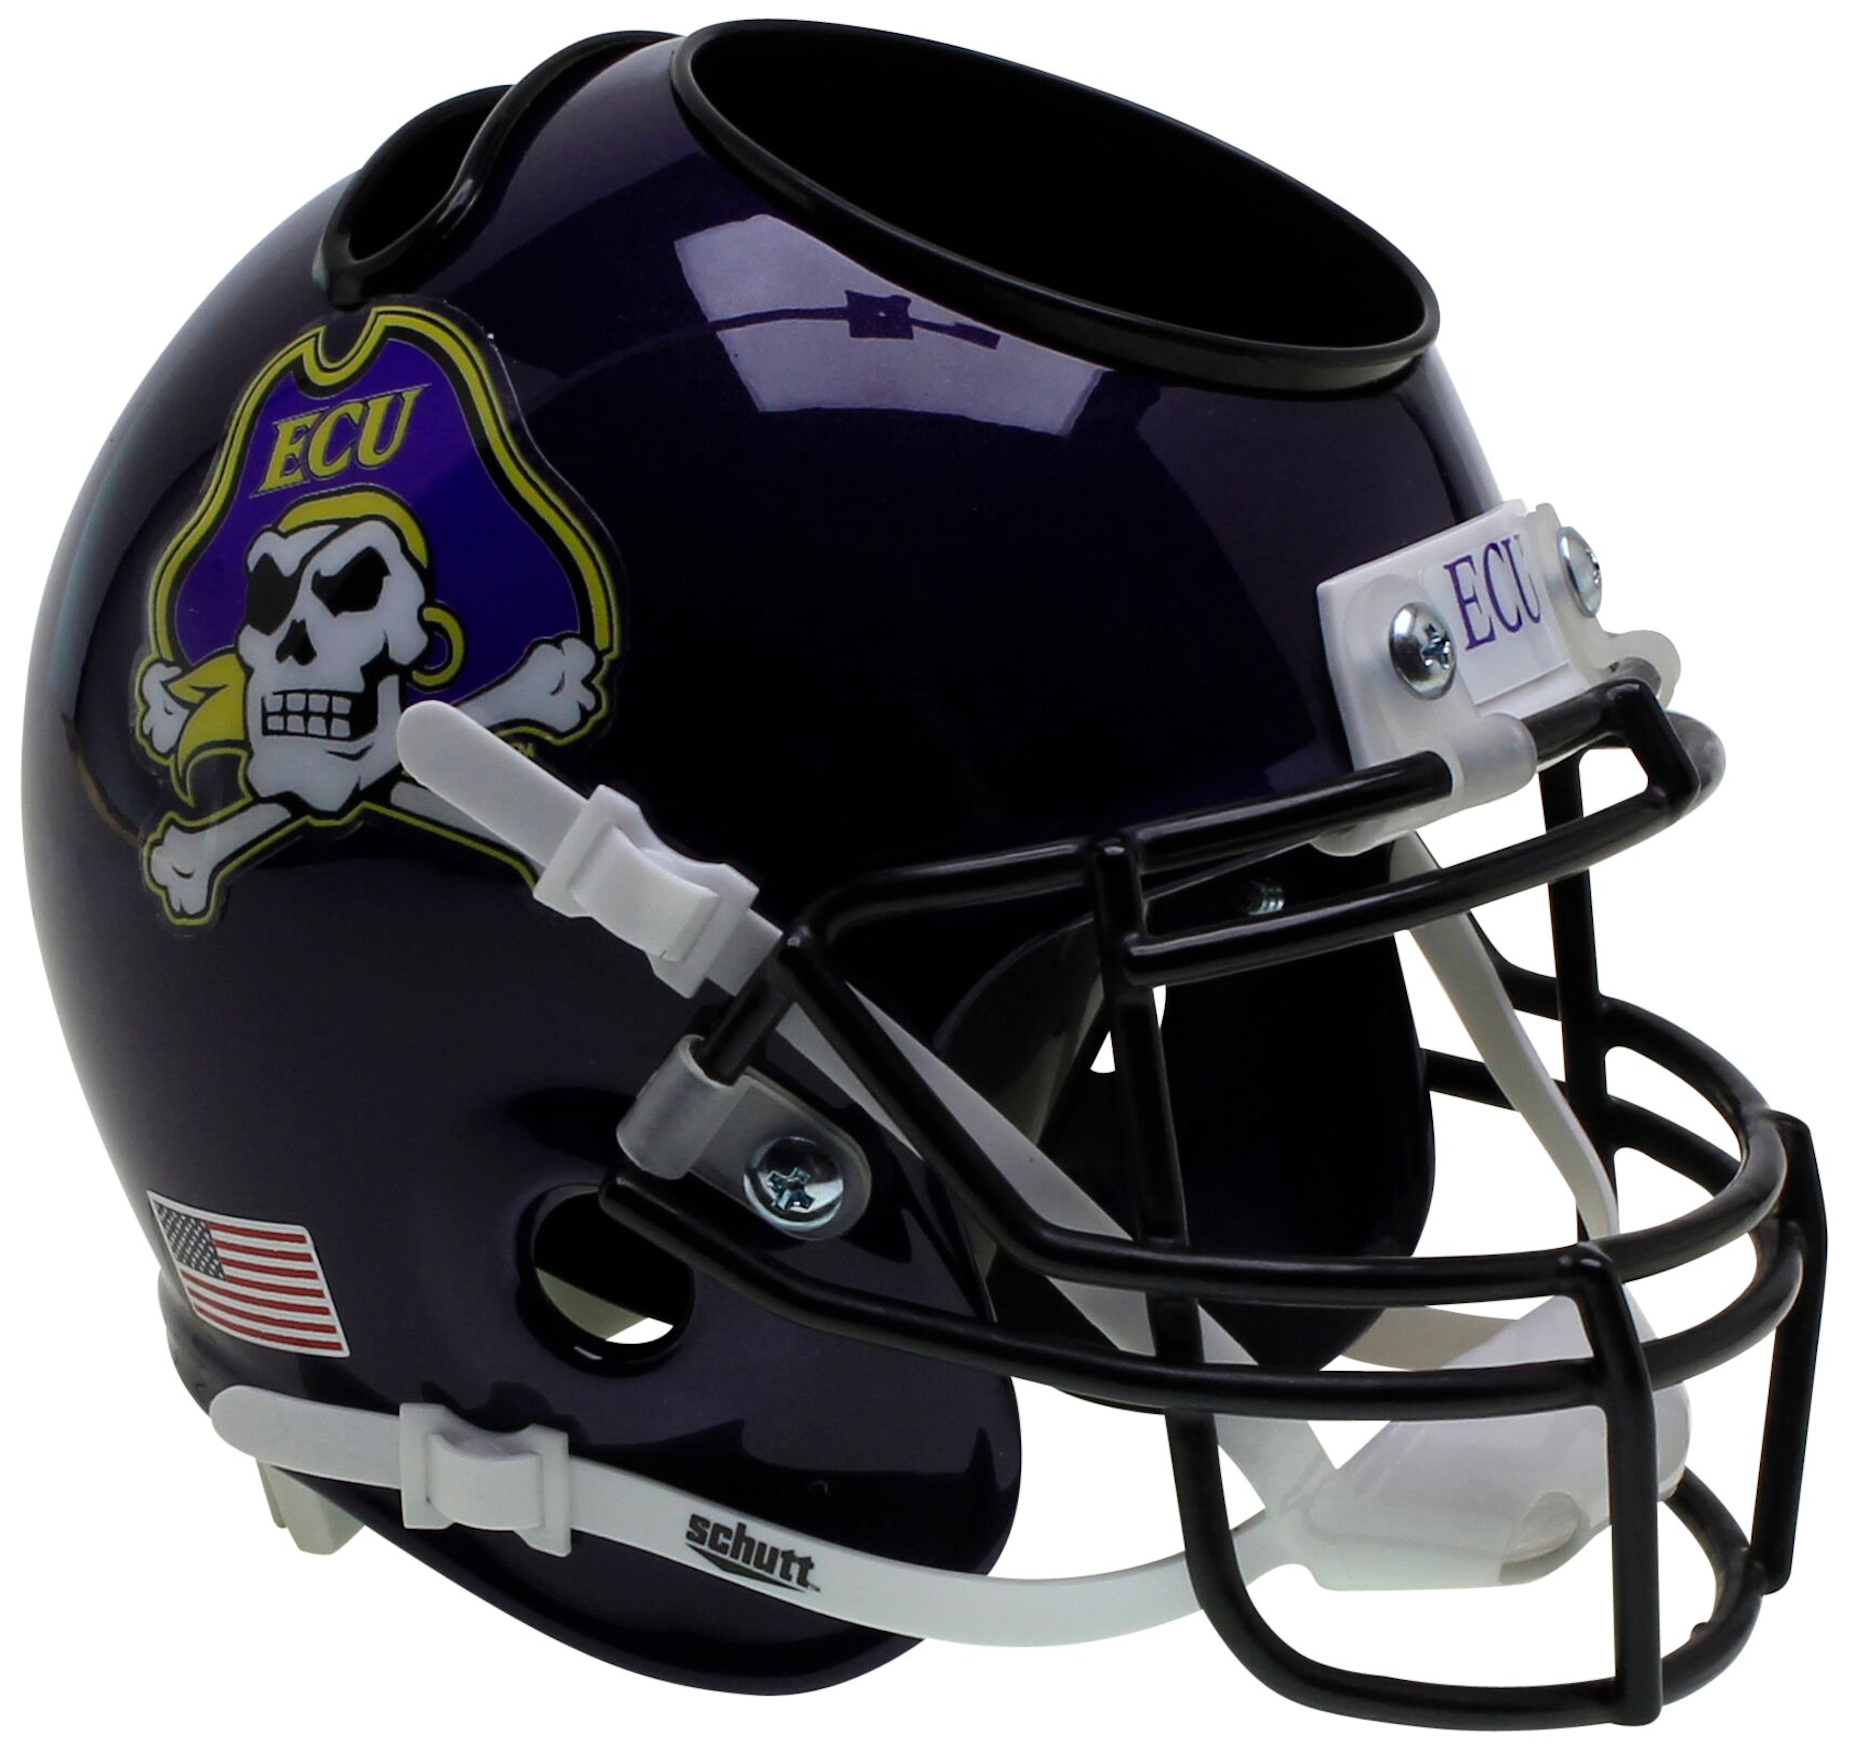 East Carolina Pirates Miniature Football Helmet Desk Caddy <B>Black Mask</B>